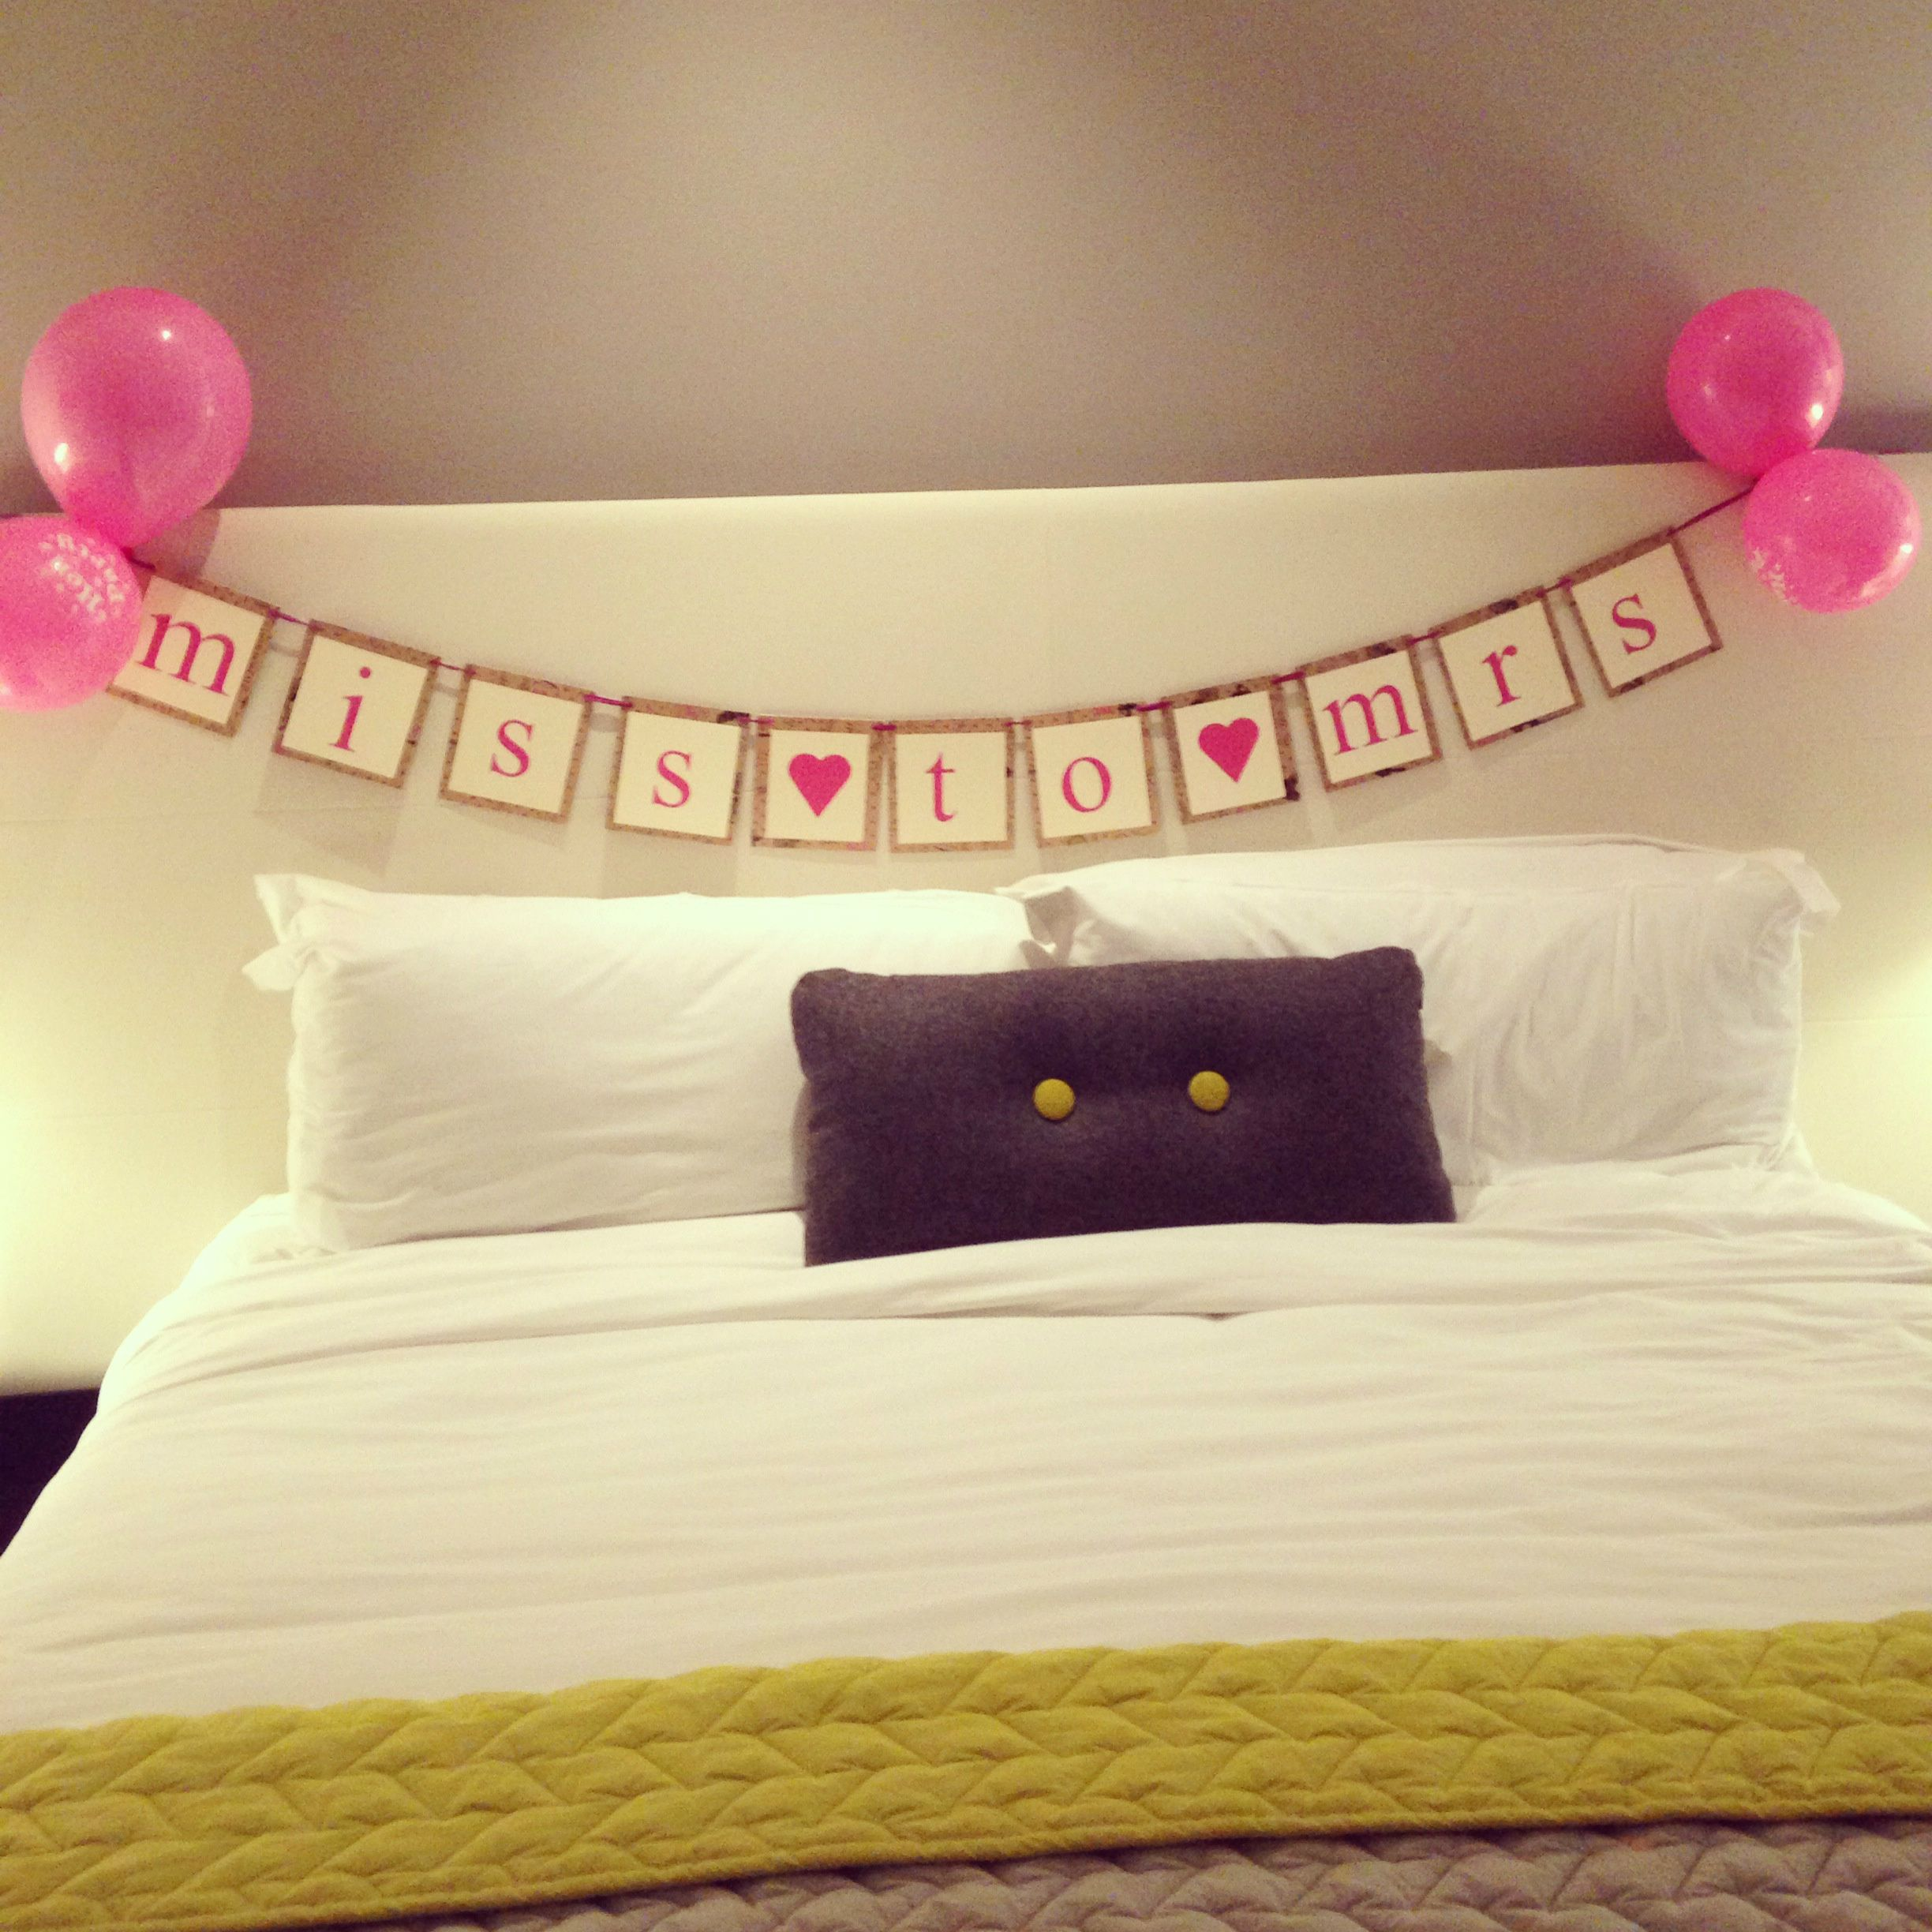 Wedding bedroom decoration ideas  Decorations Archives  Hen Party Ideas  The Hen Planner  Wedding